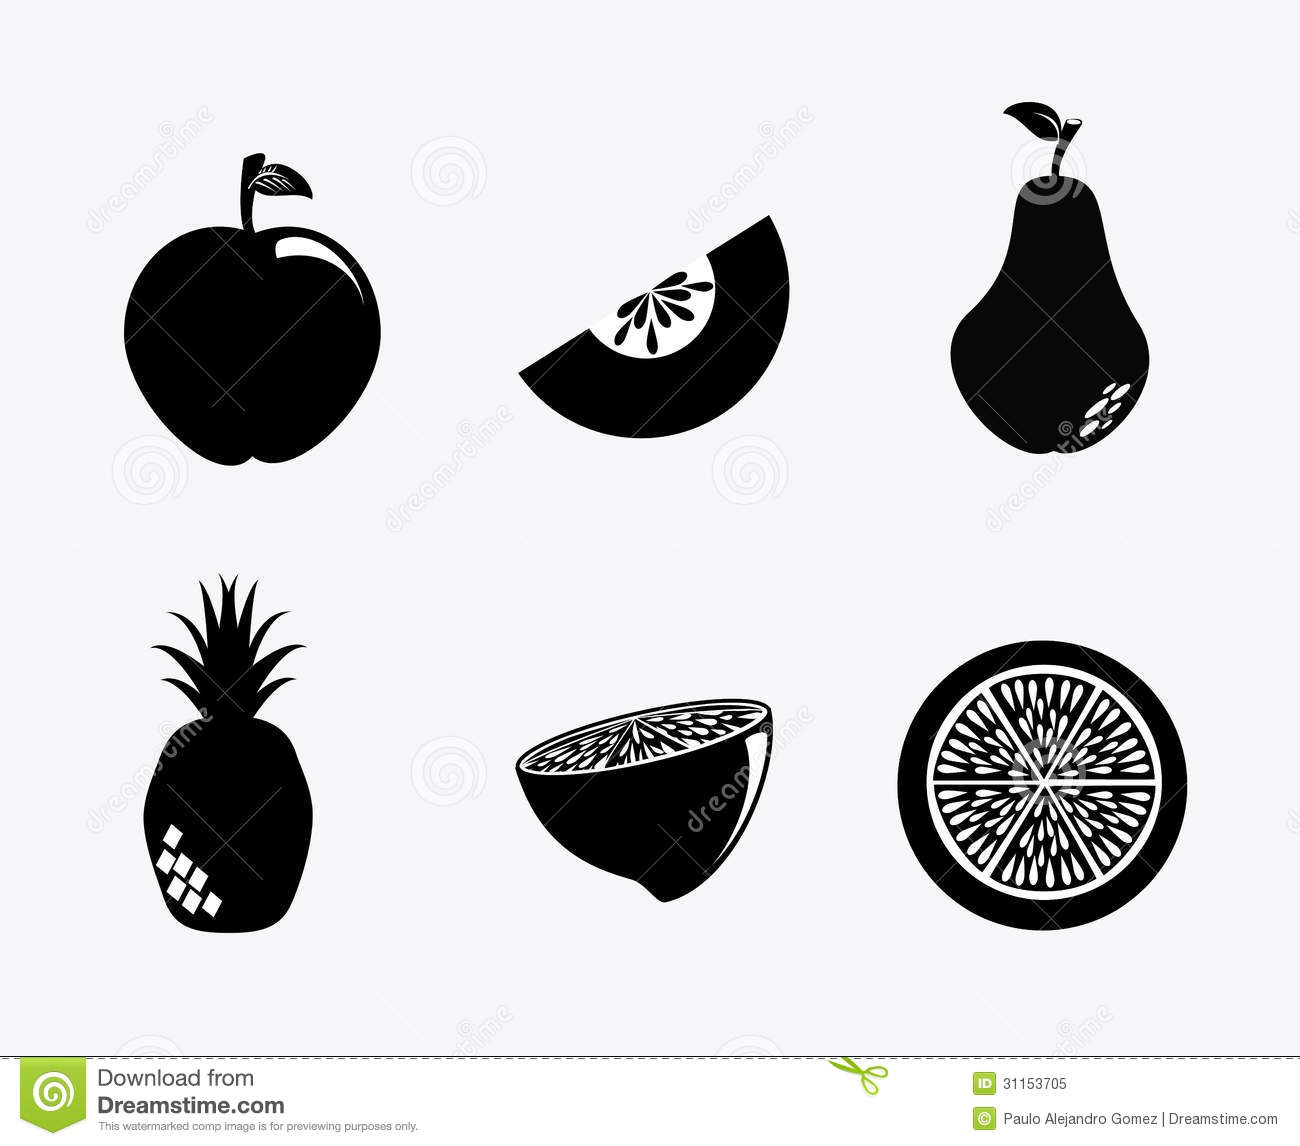 Fruit Silhouette Royalty Free Stock Photo